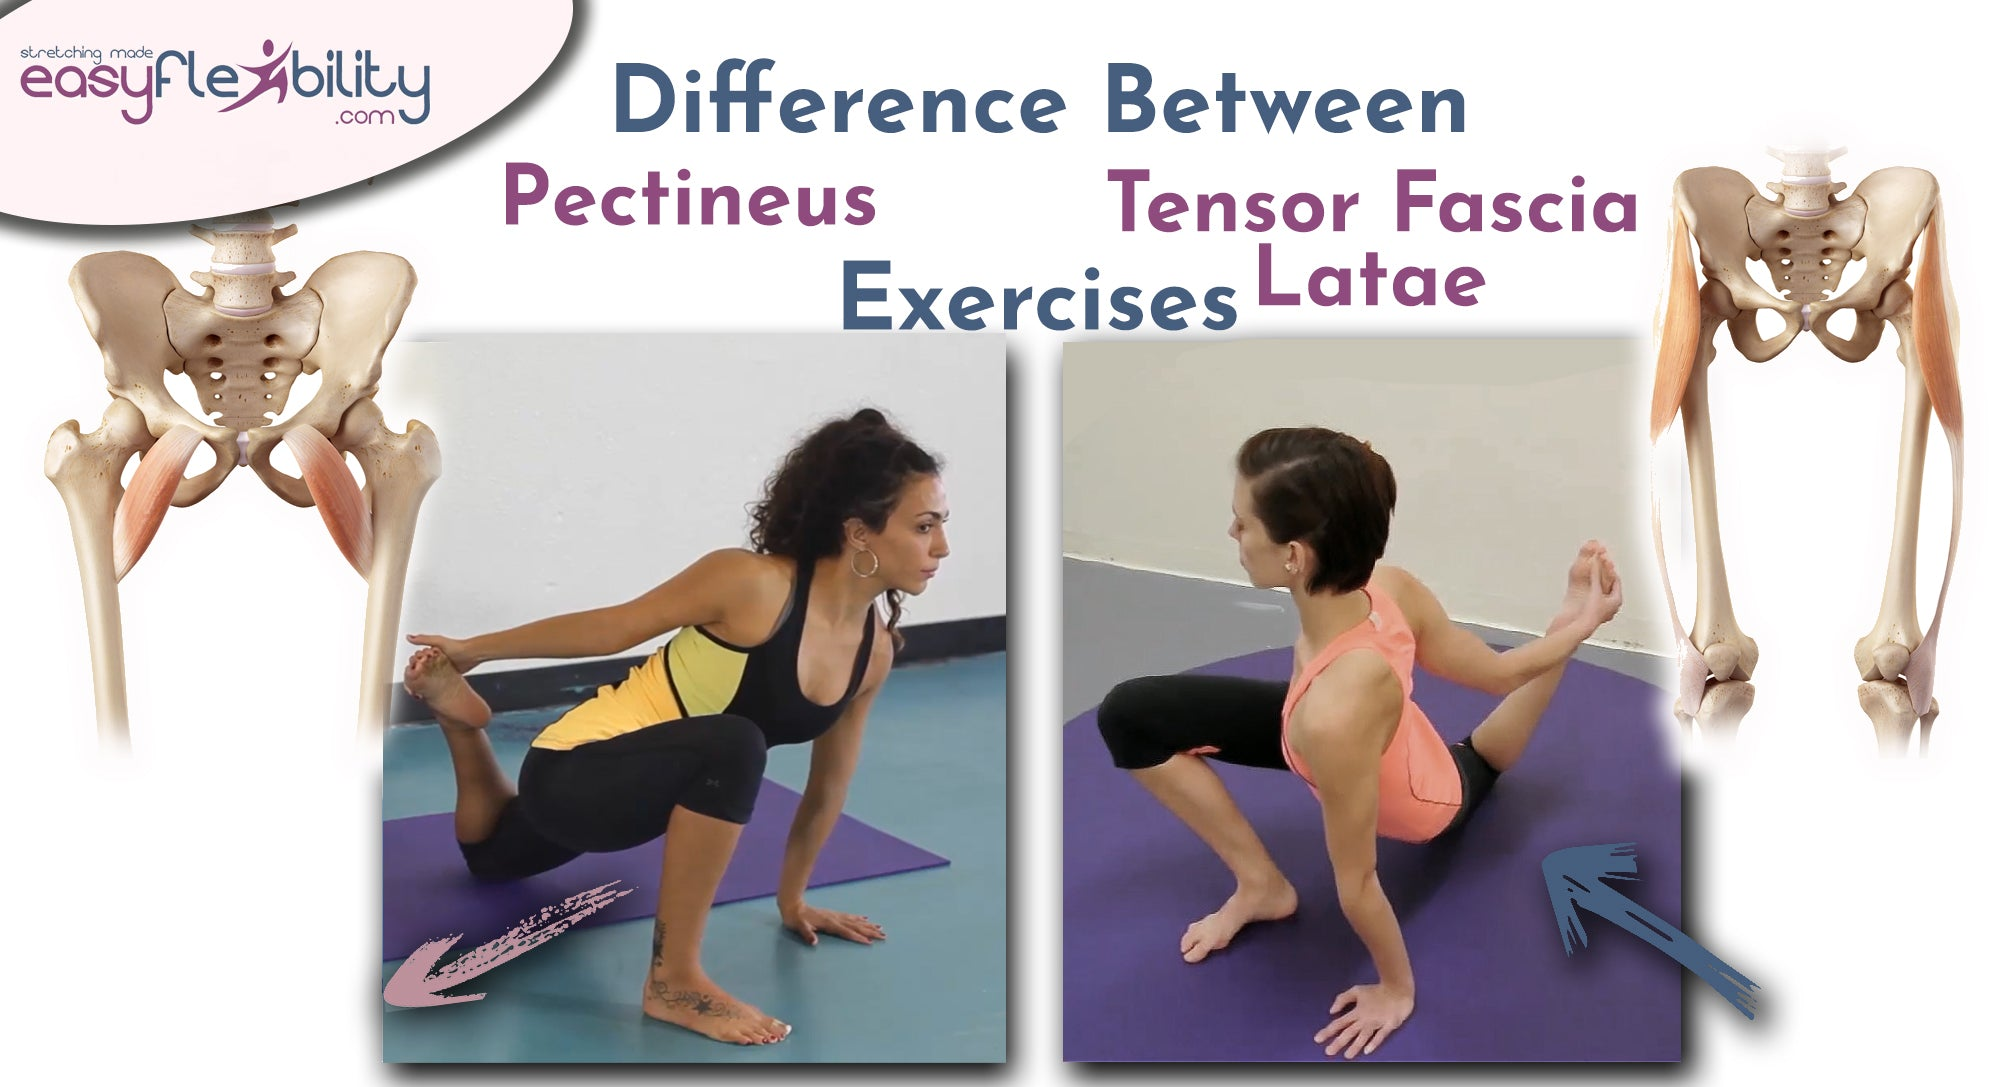 Differences between Pectineus ZST and Tensor fascia latae ZST